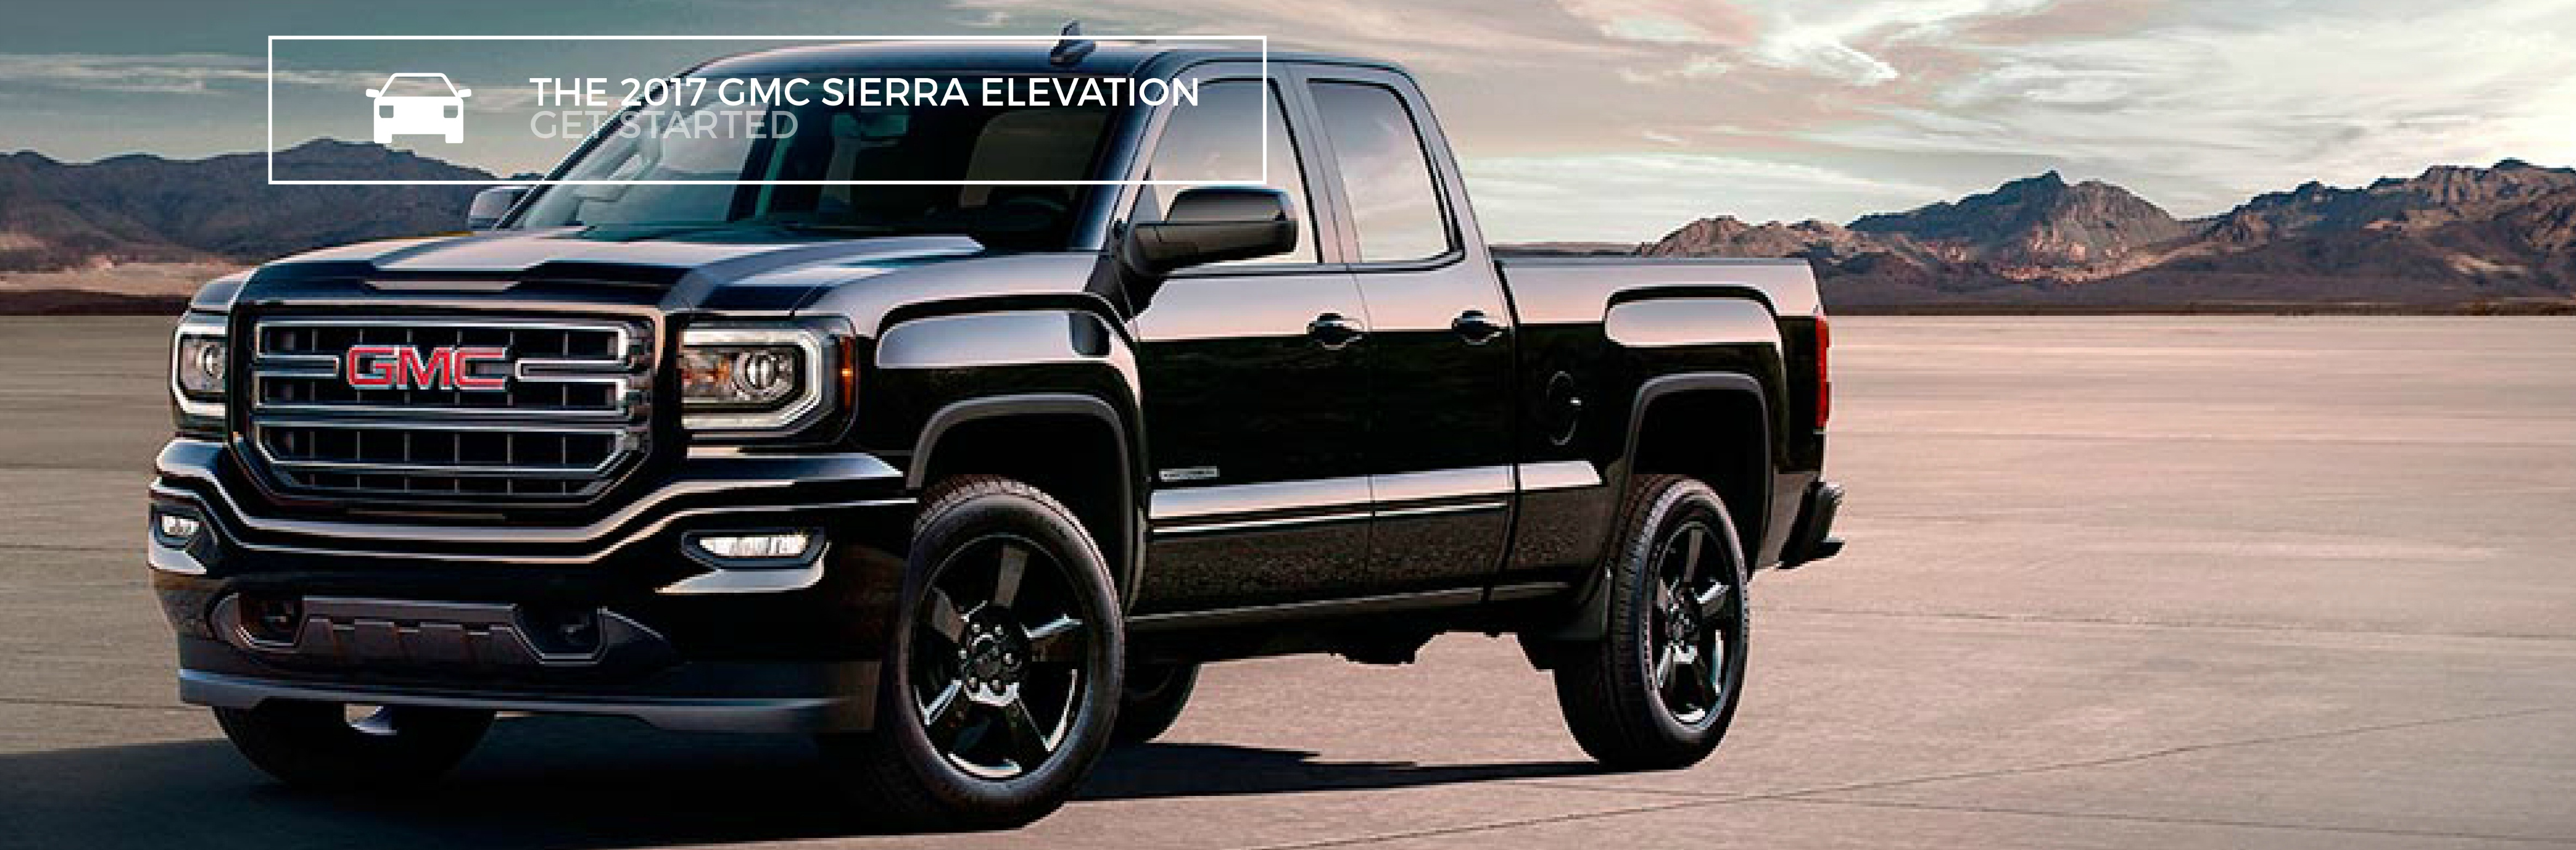 GMC Sierra Elevation 2017-01lr